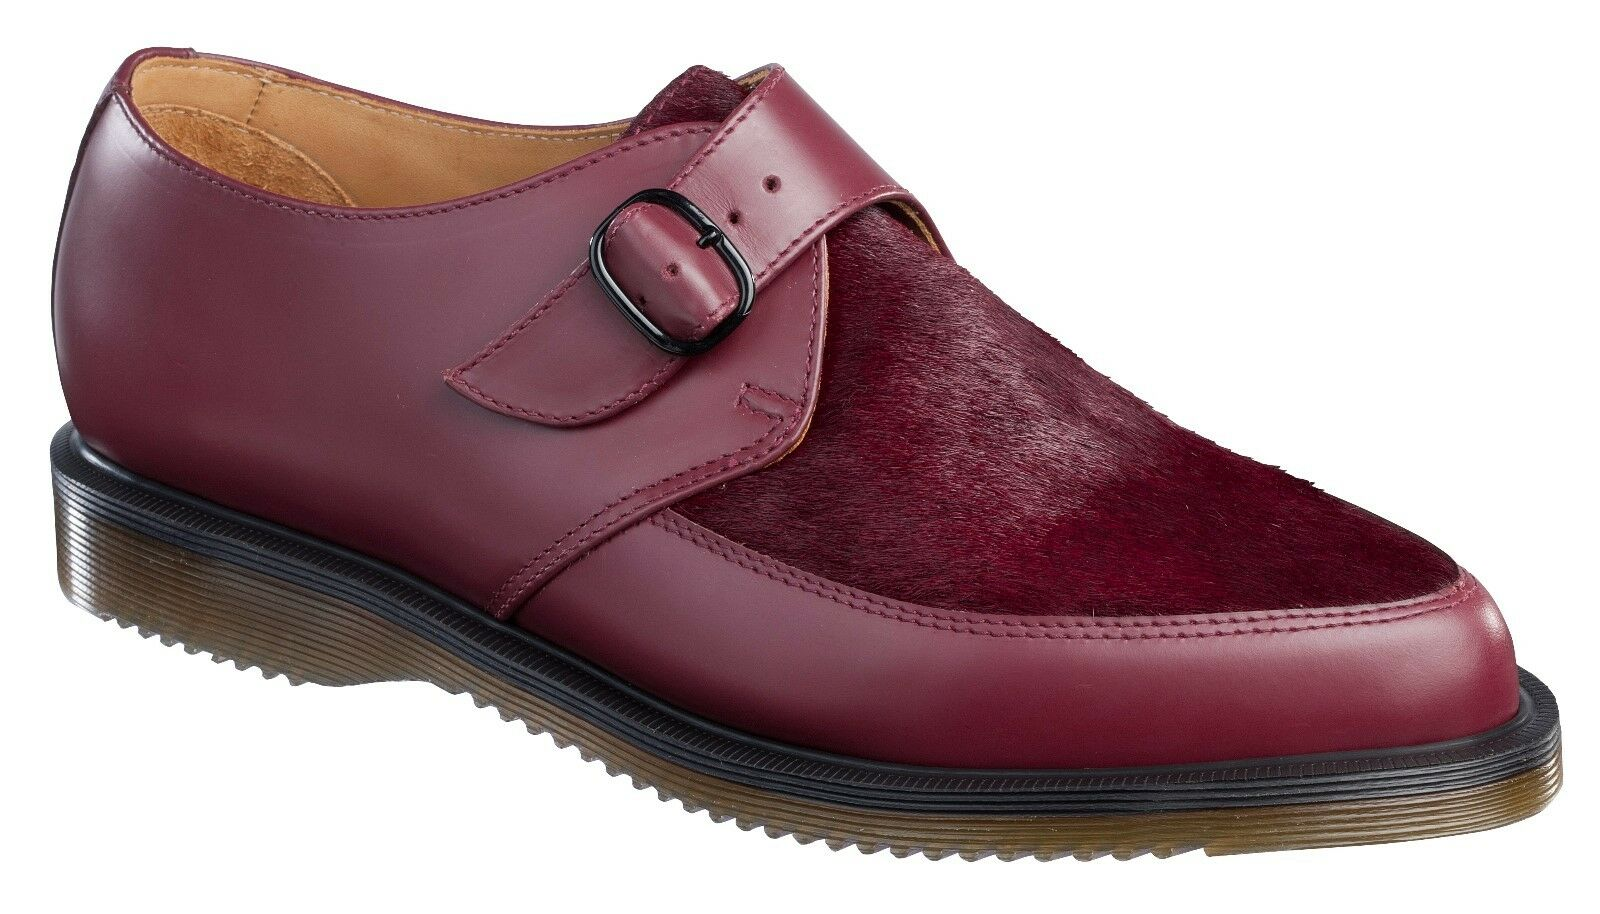 e053672a8bab Dr. Martens Ashland Pointed Monk Men's 14 Shoes Cherry Red Smooth ...